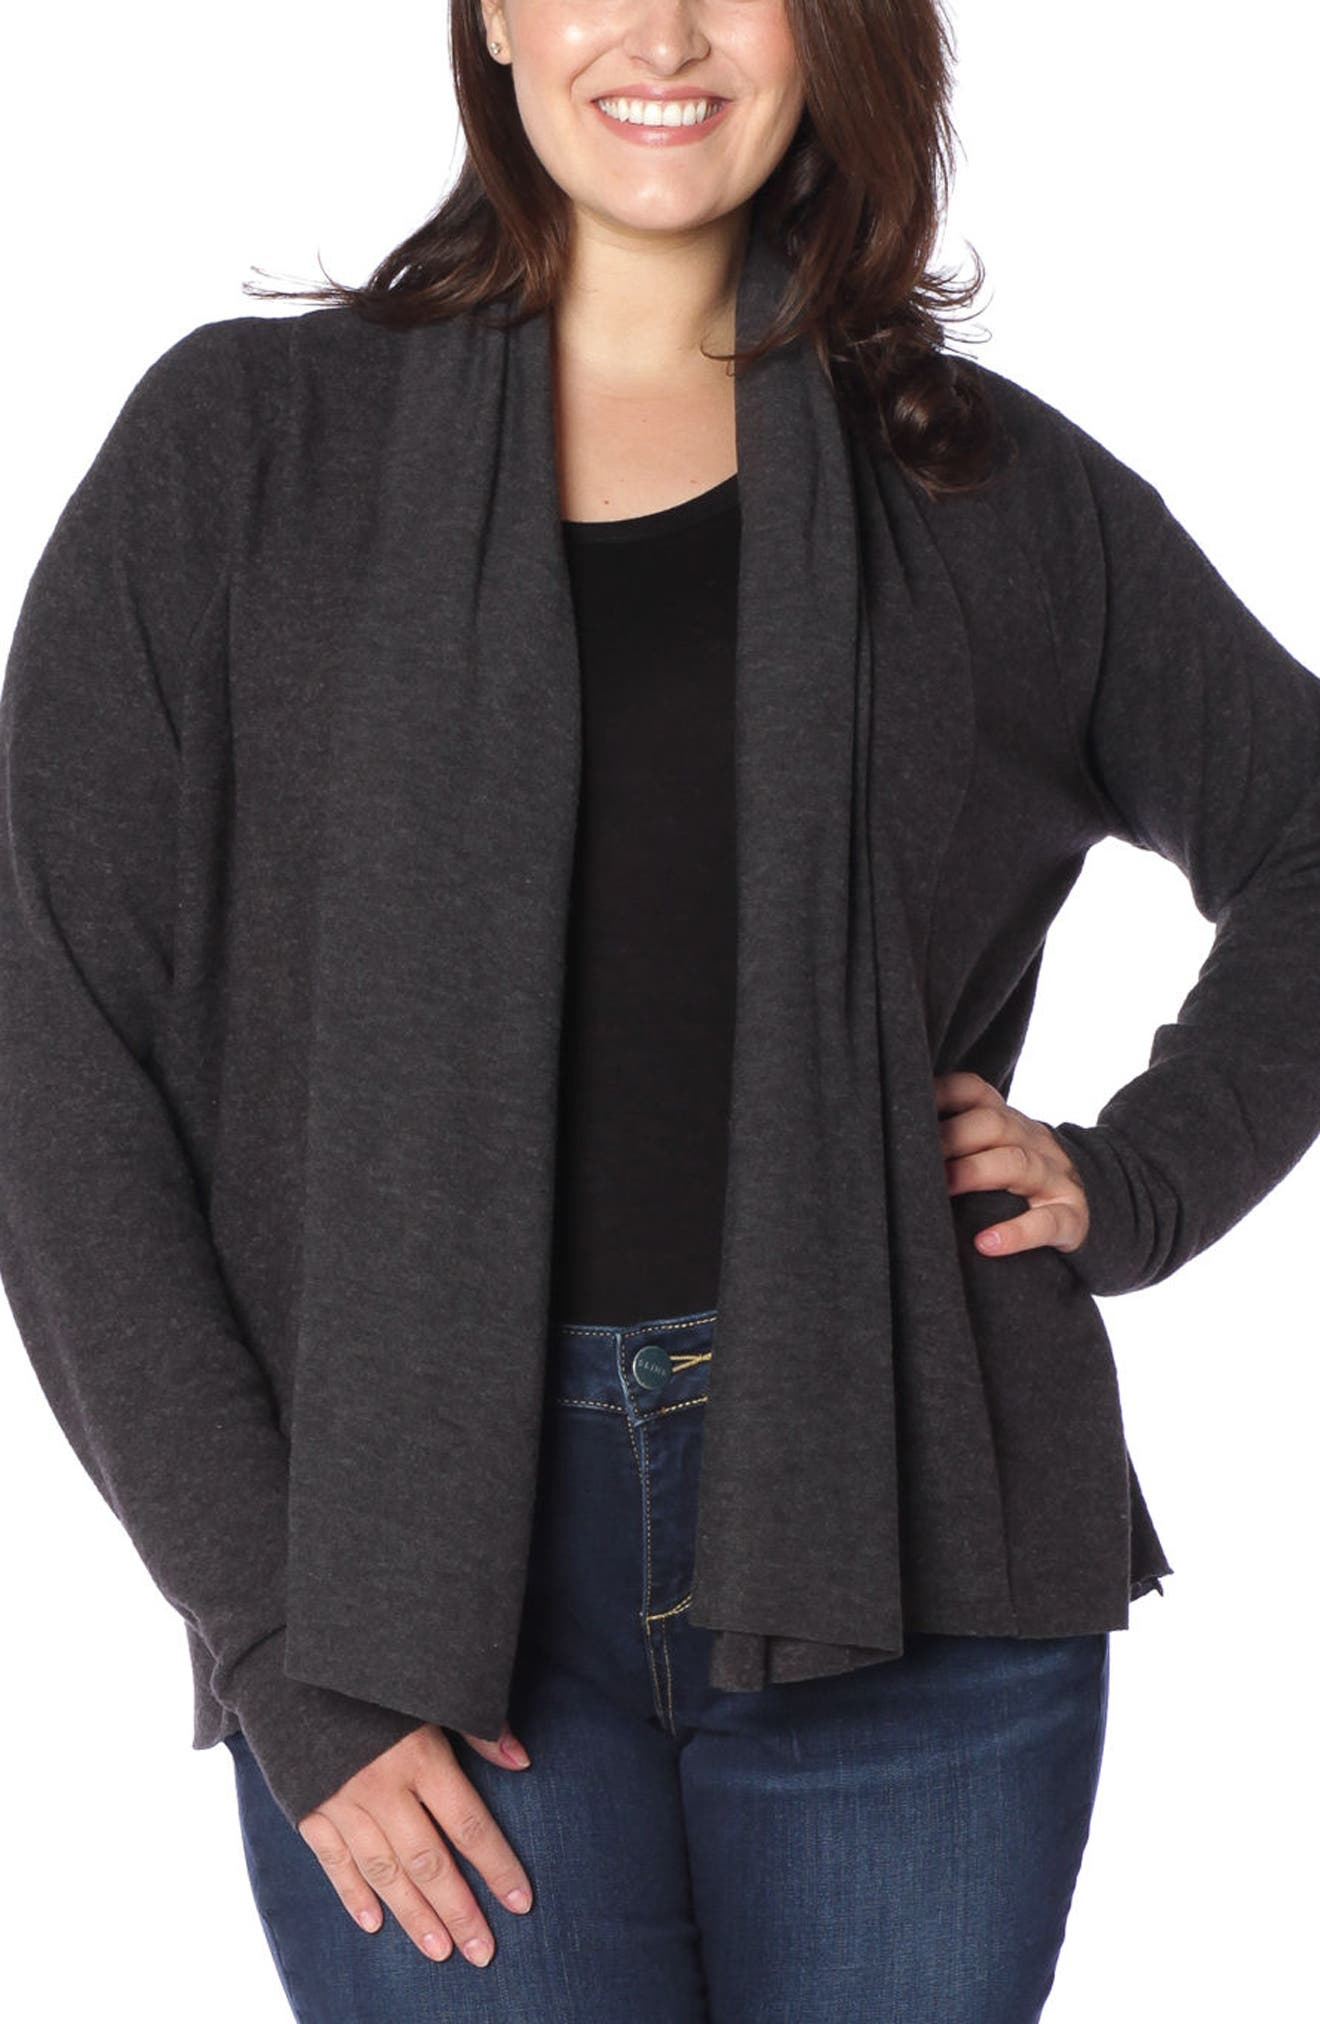 SLINK JEANS Draped Open Cardigan in Charcoal